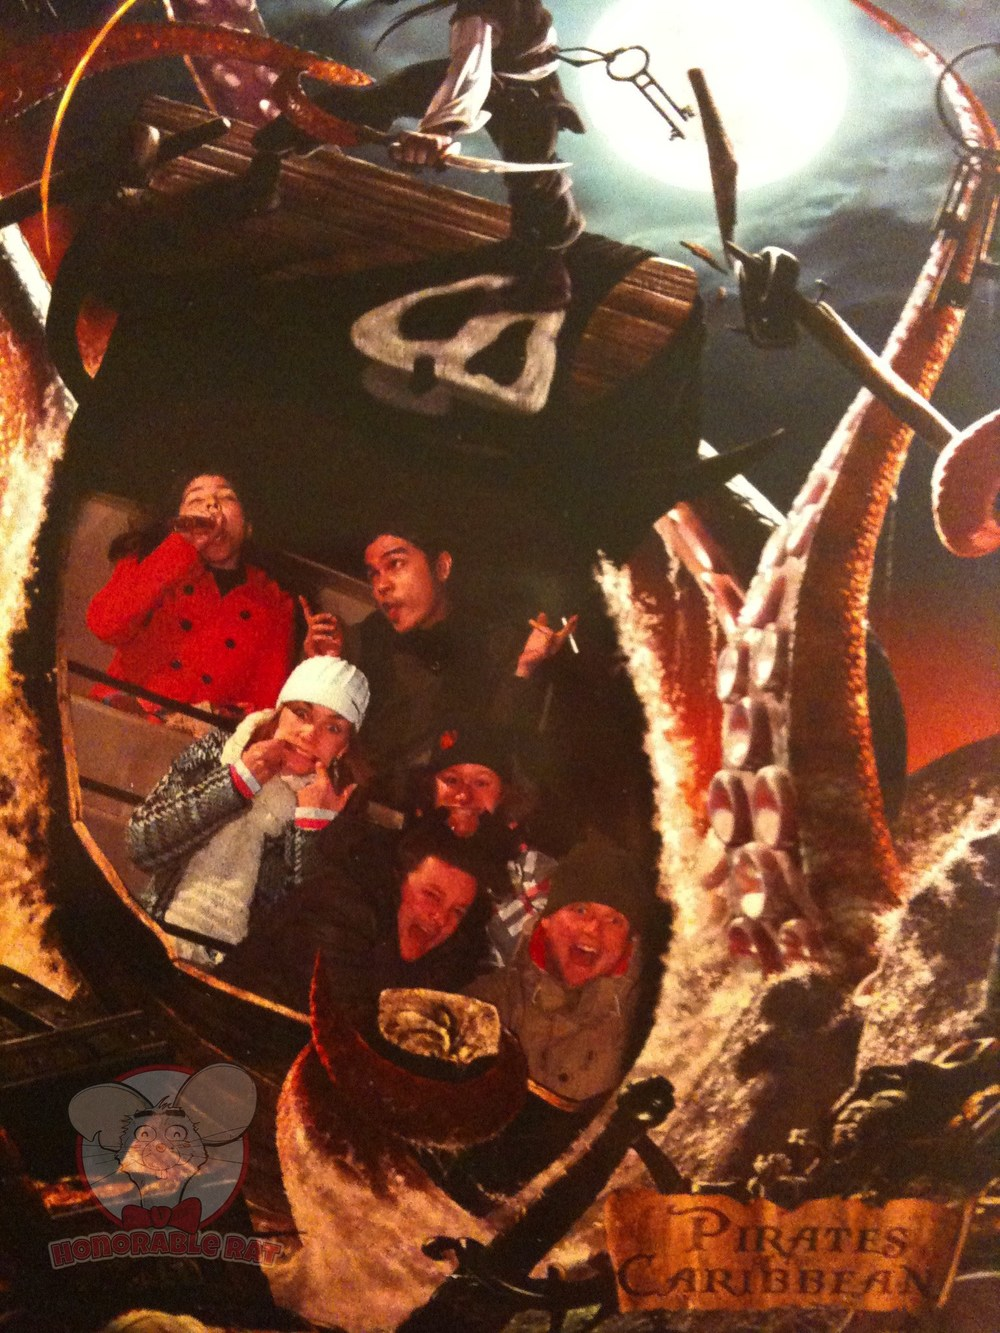 My sister, Nadia, and I posing in the last row for our ride photo on The Pirates of the Caribbean in Disneyland Paris . A lot of preparation went into this shot.